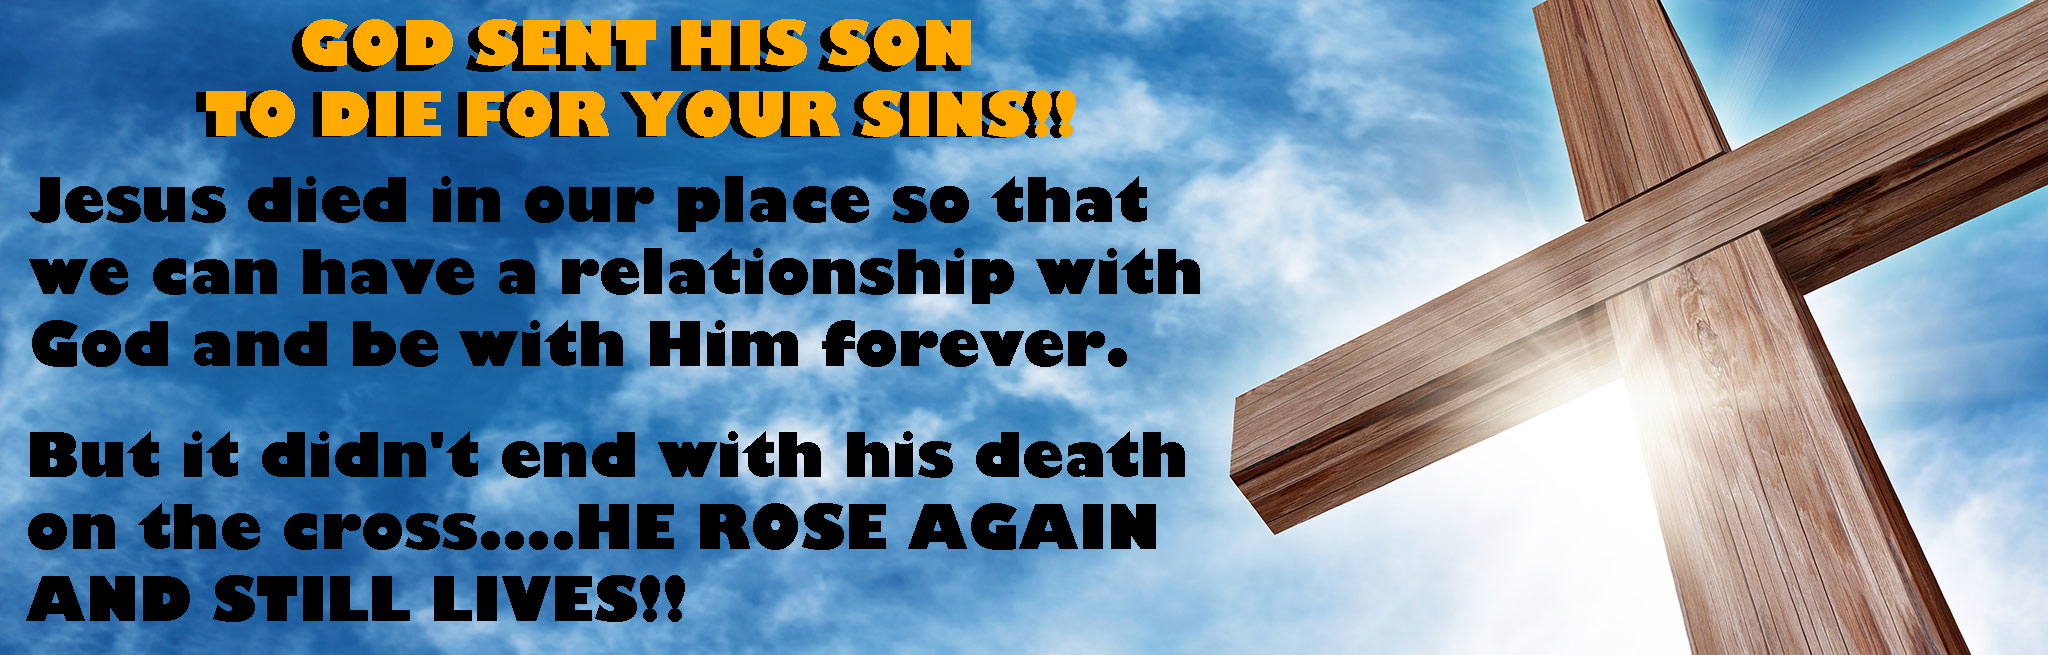 God sent his son Christ to die for your sins